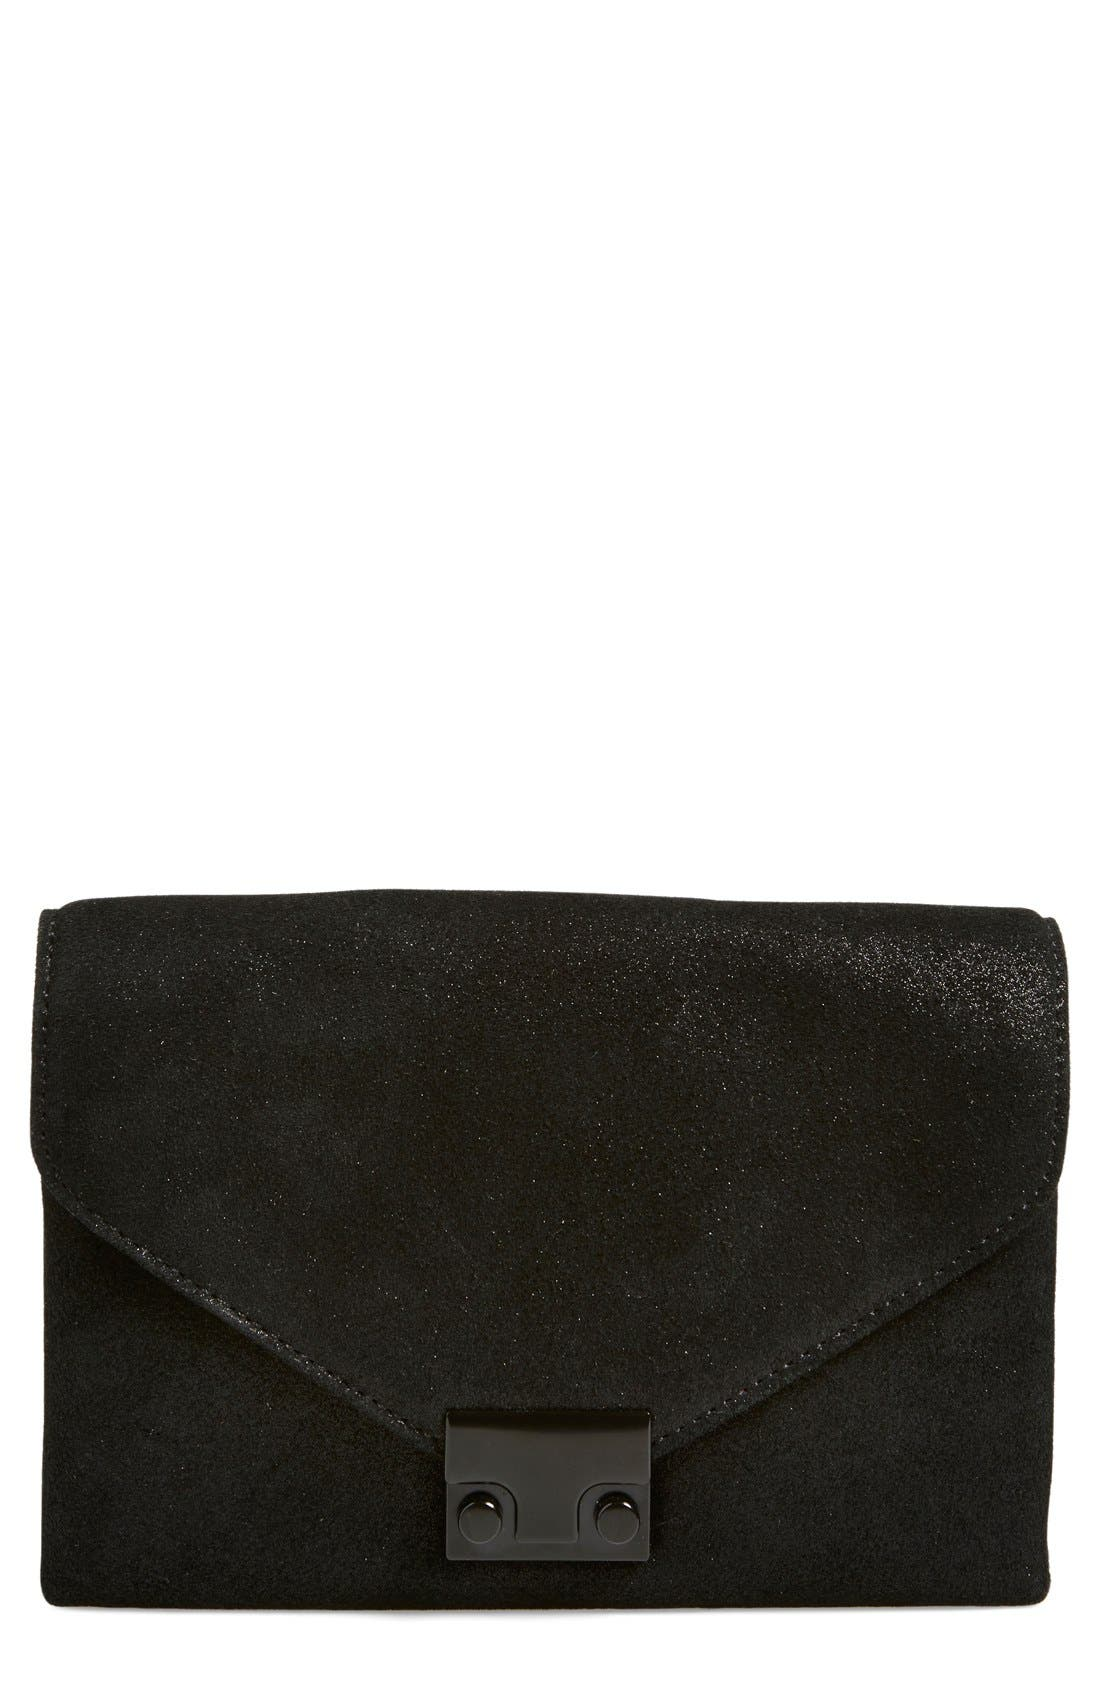 Alternate Image 1 Selected - Loeffler Randall 'Junior Lock' Leather Clutch